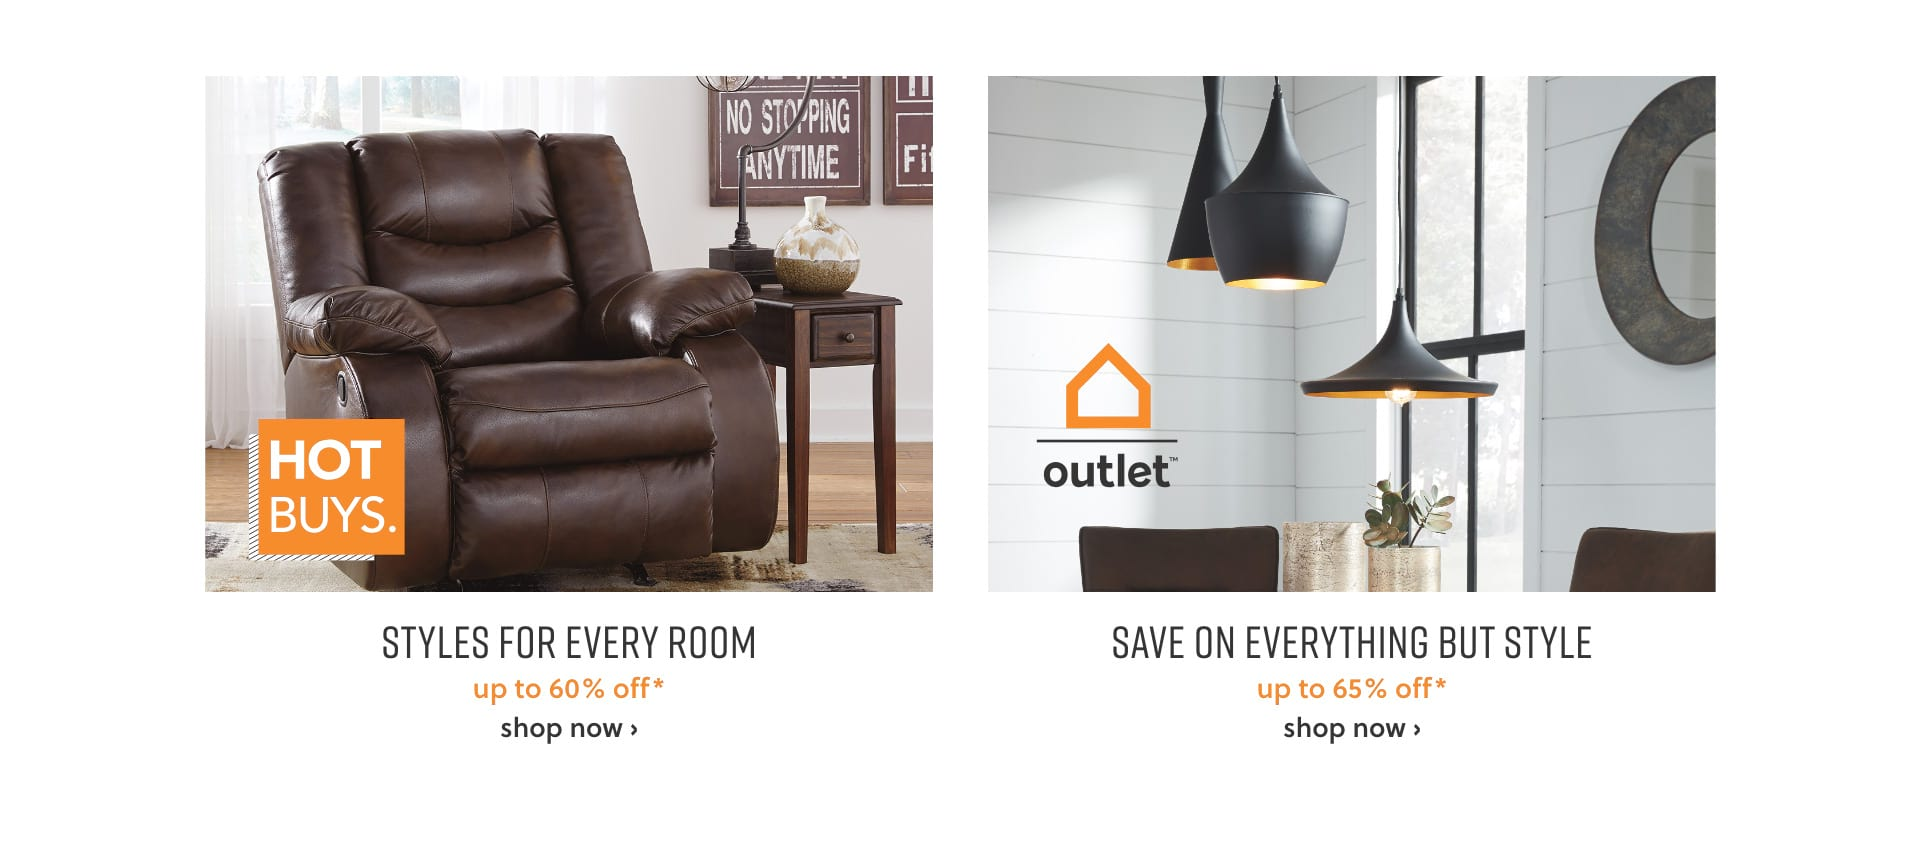 Up to 60% off* Hot Buys and up to 65% off* Outlet